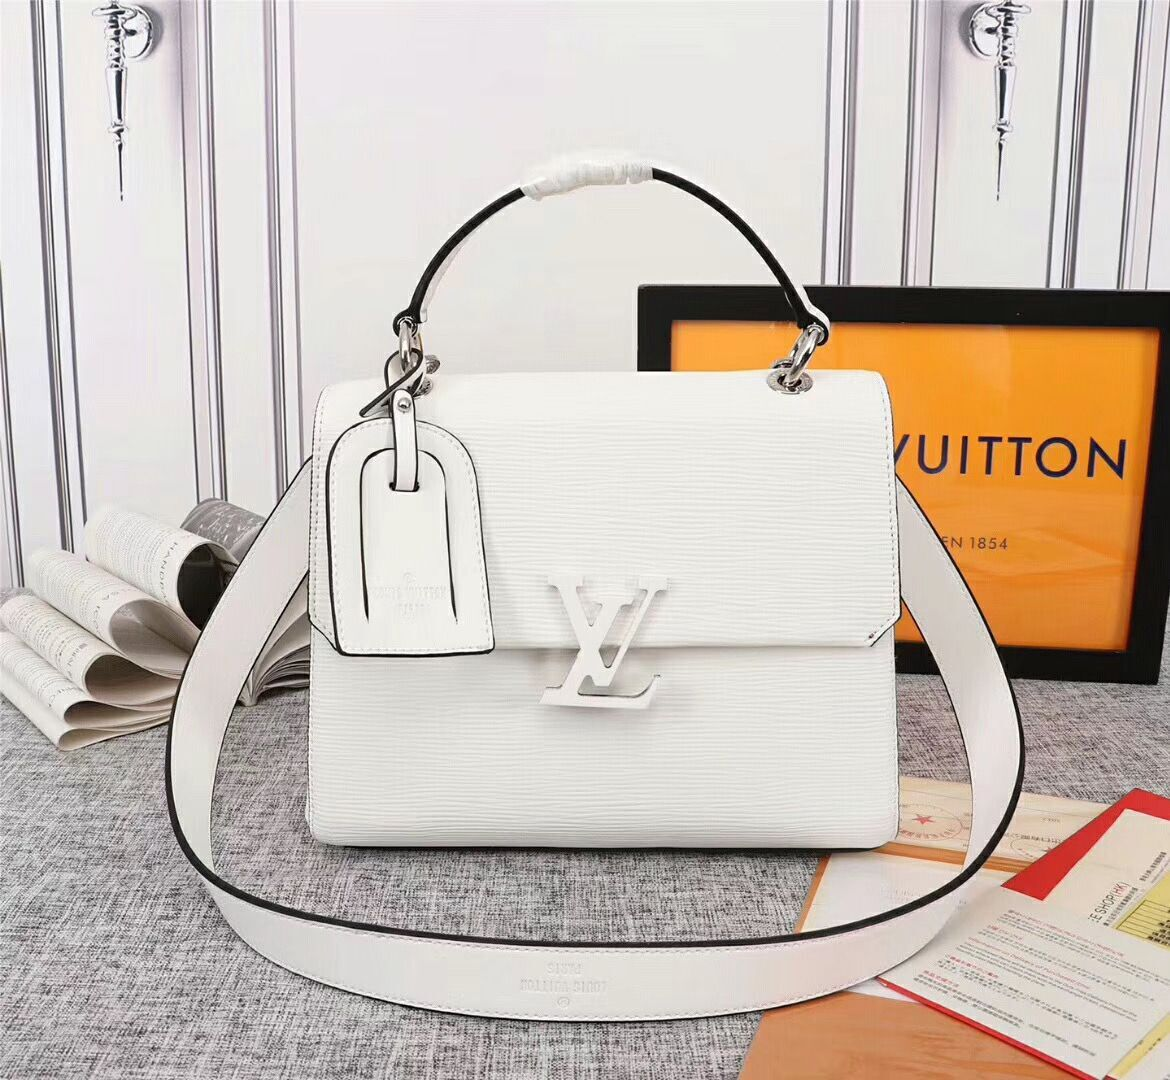 Louis Vuitton Original Epi Leather Grenelle Small Tote Bag M53694 White